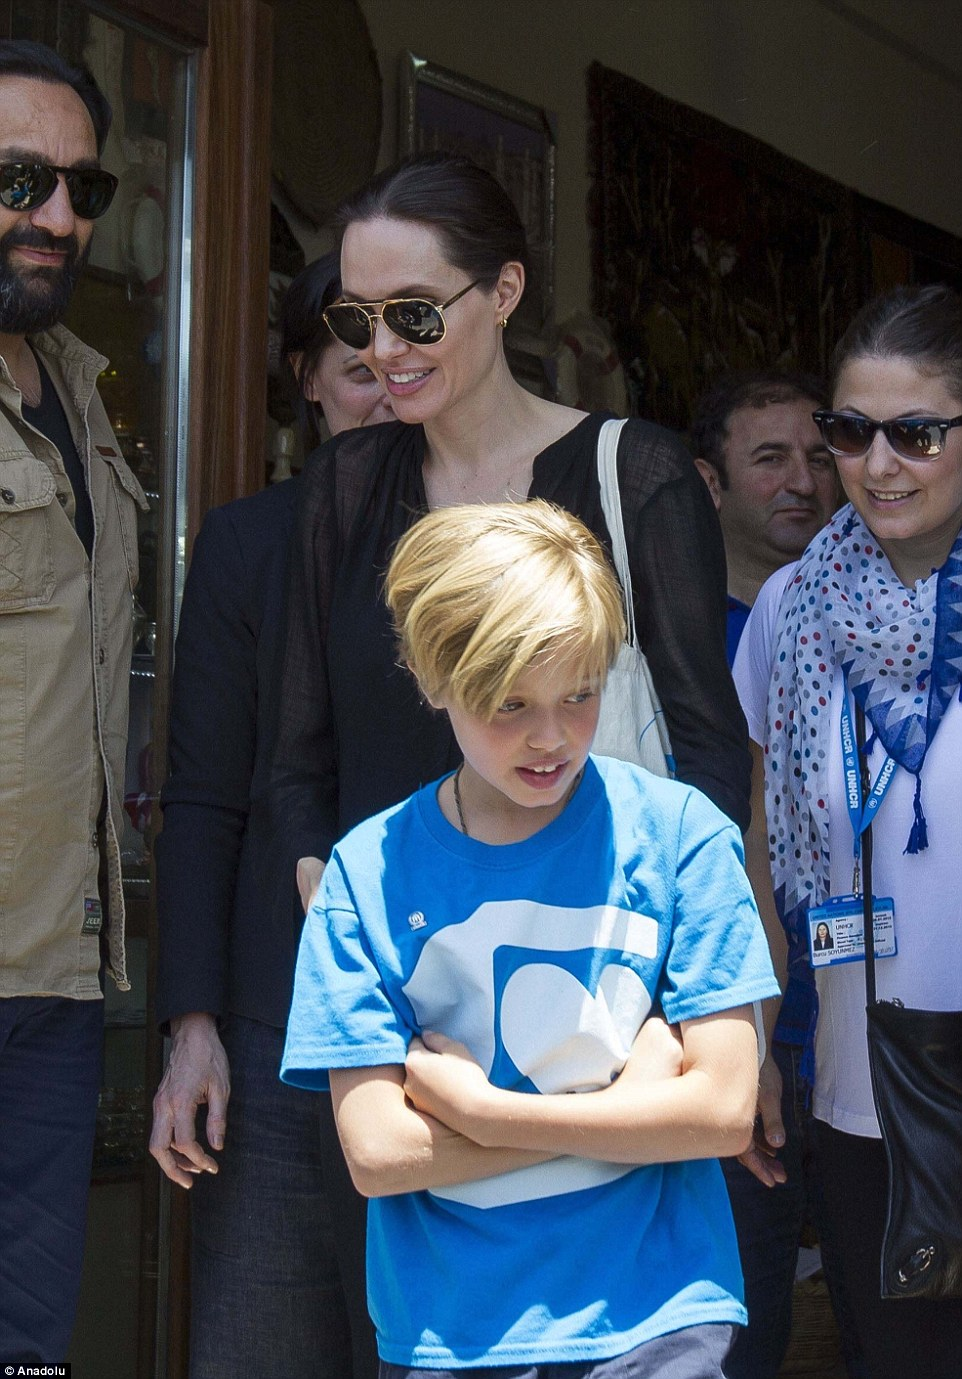 Hollywood star and UN High Commissioner for Refugees visit a camp for Syrian refugees in southeastern Turkey with nine-year-old daughter Shiloh Jolie-Pitt